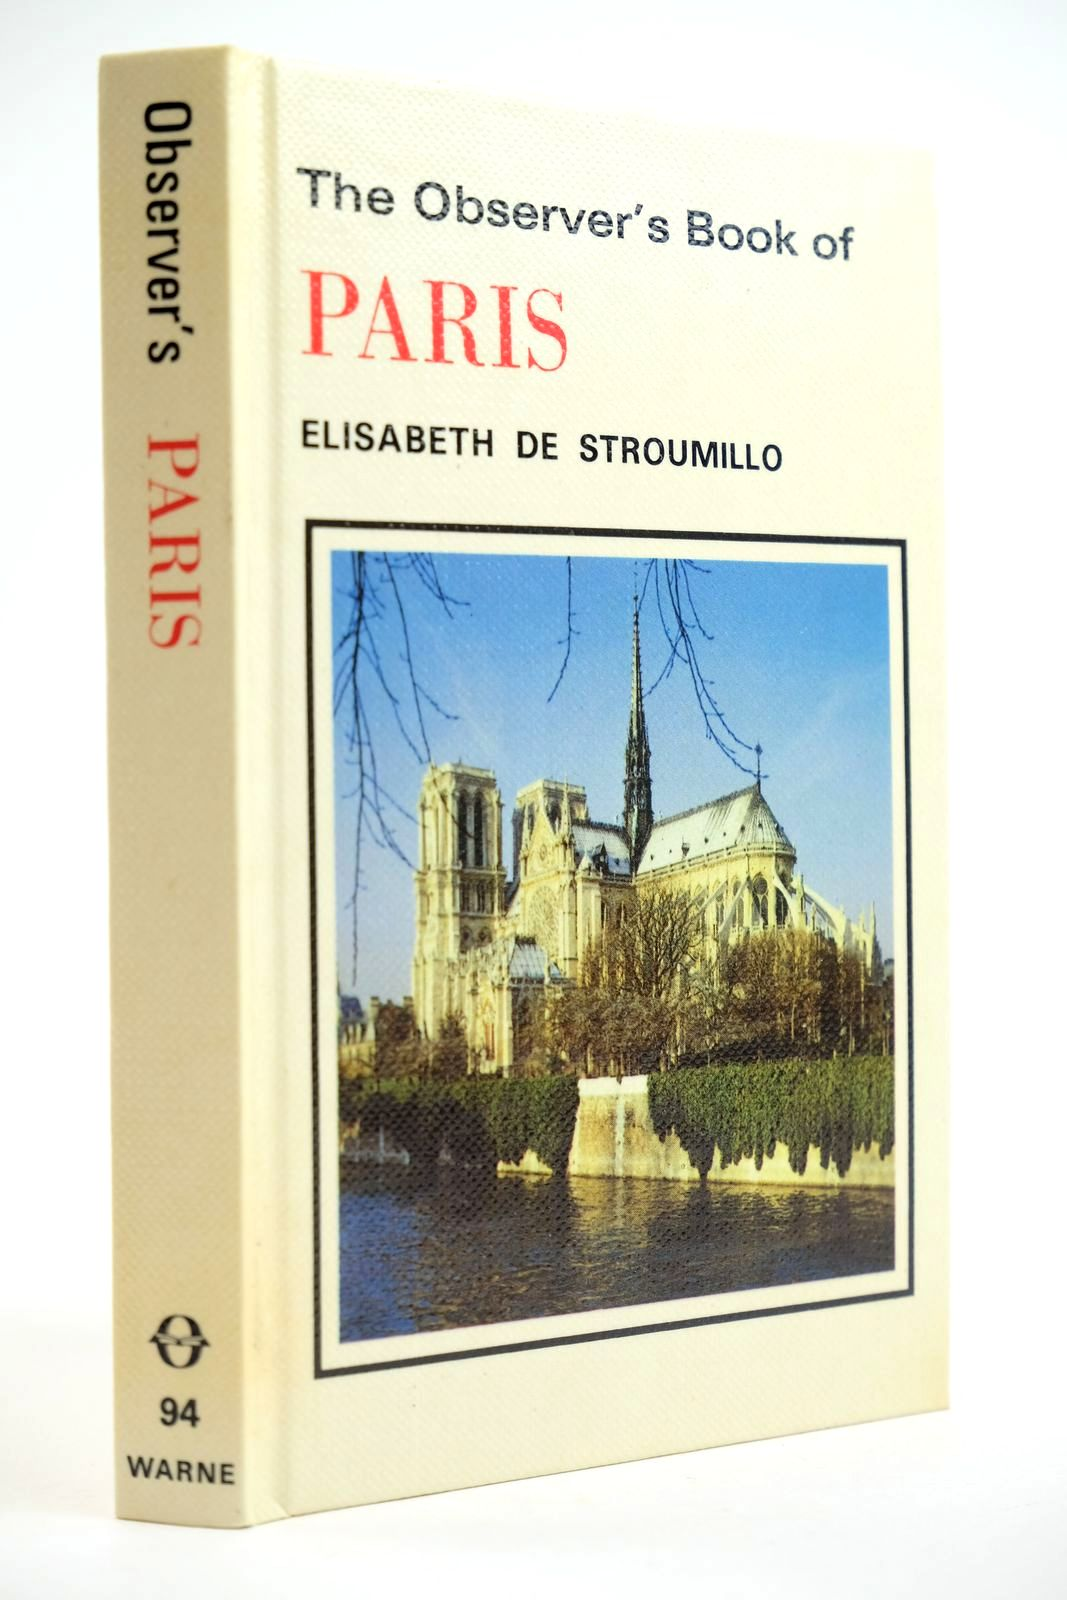 Photo of THE OBSERVER'S BOOK OF PARIS written by De Stroumillo, Elisabeth published by Frederick Warne & Co Ltd. (STOCK CODE: 2132191)  for sale by Stella & Rose's Books